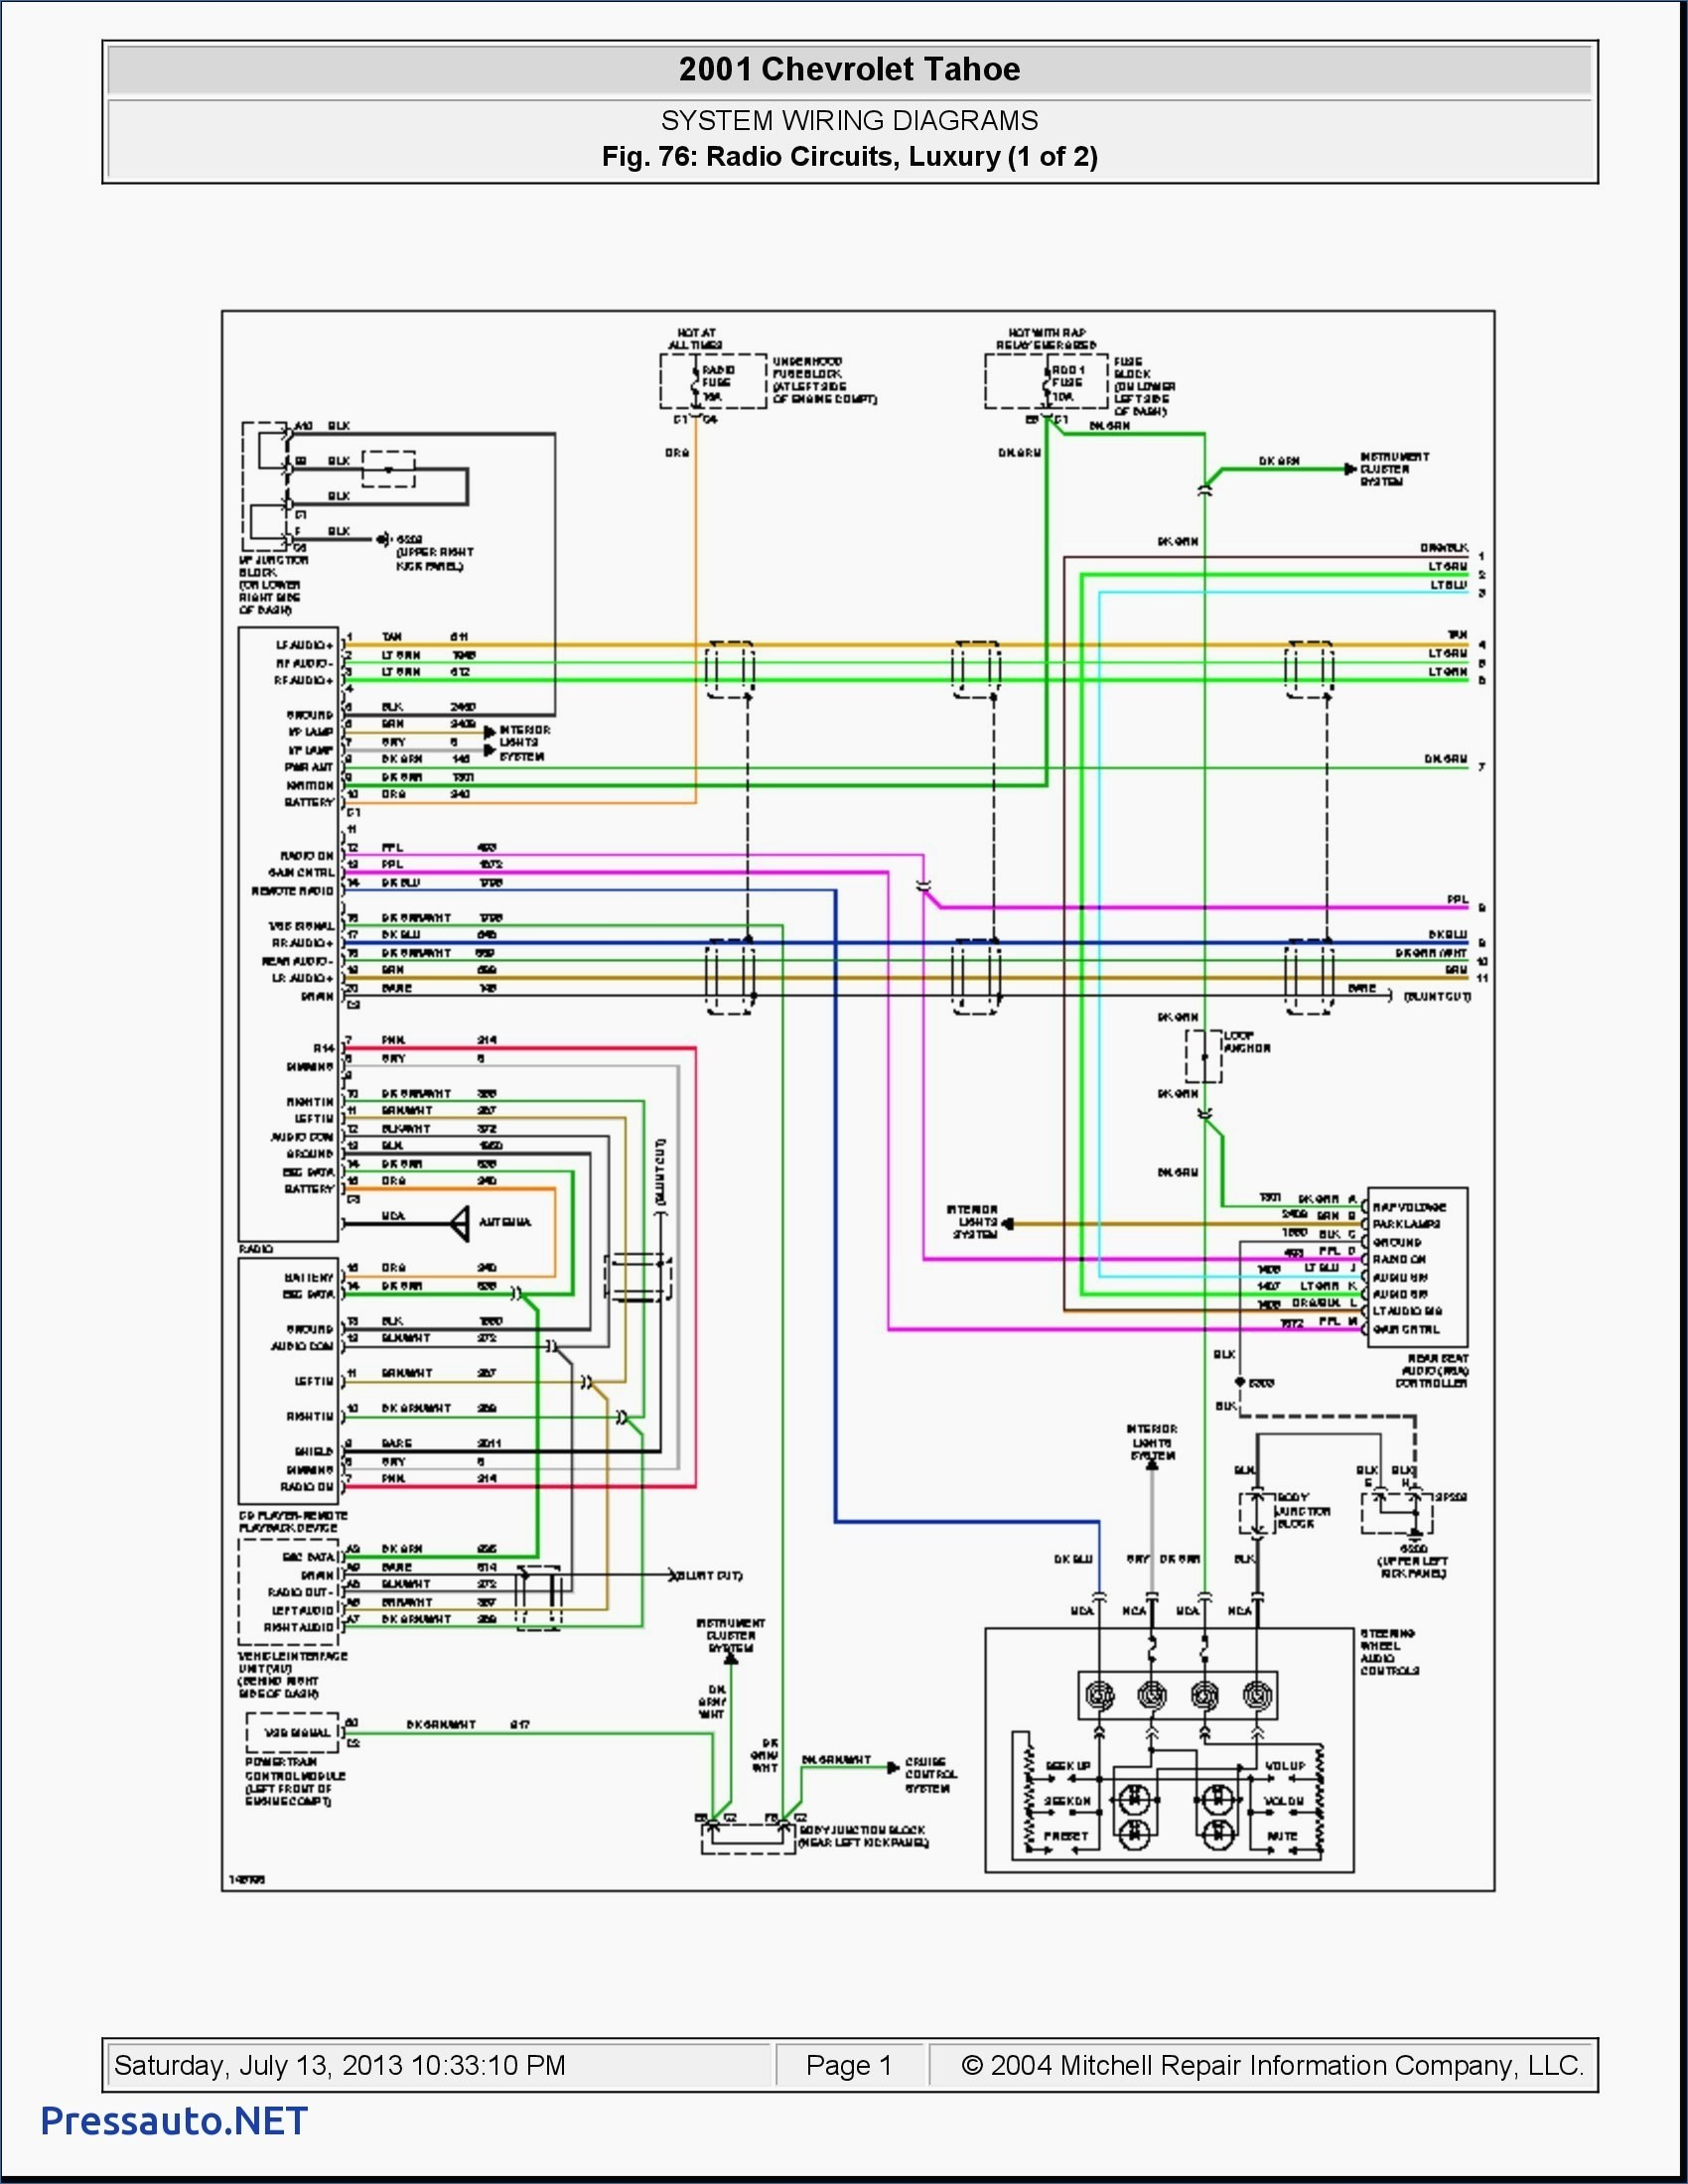 2014 Chevy Cruze Radio Wiring Diagram - 2001 Chevy Tahoe Radio Wiring  Diagram Wiring Diagram U2022